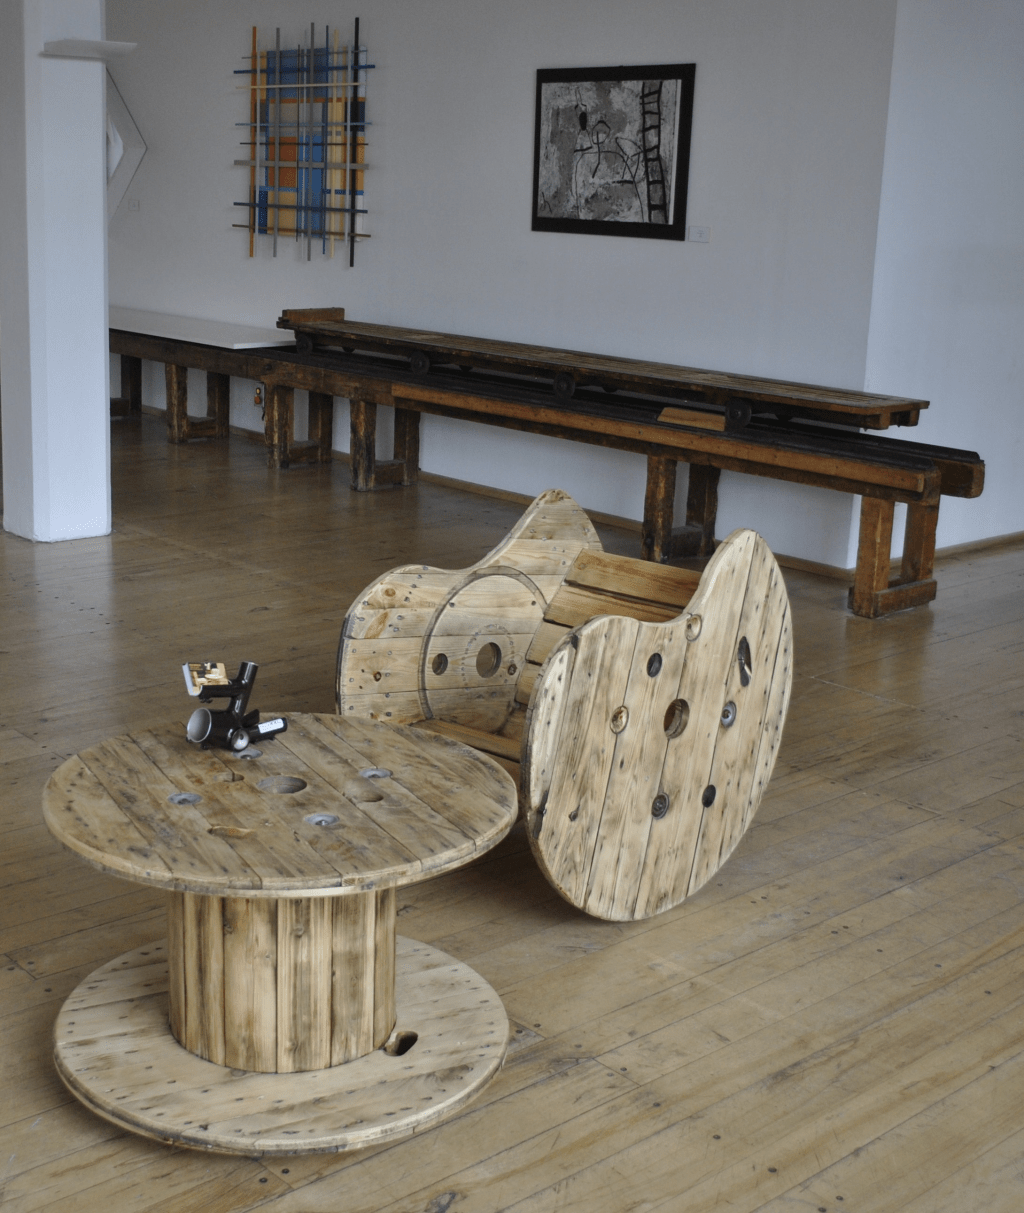 Couchtisch 70 X 70 Upcycling - Recycling Möbel Im Industrie & Vintage Style